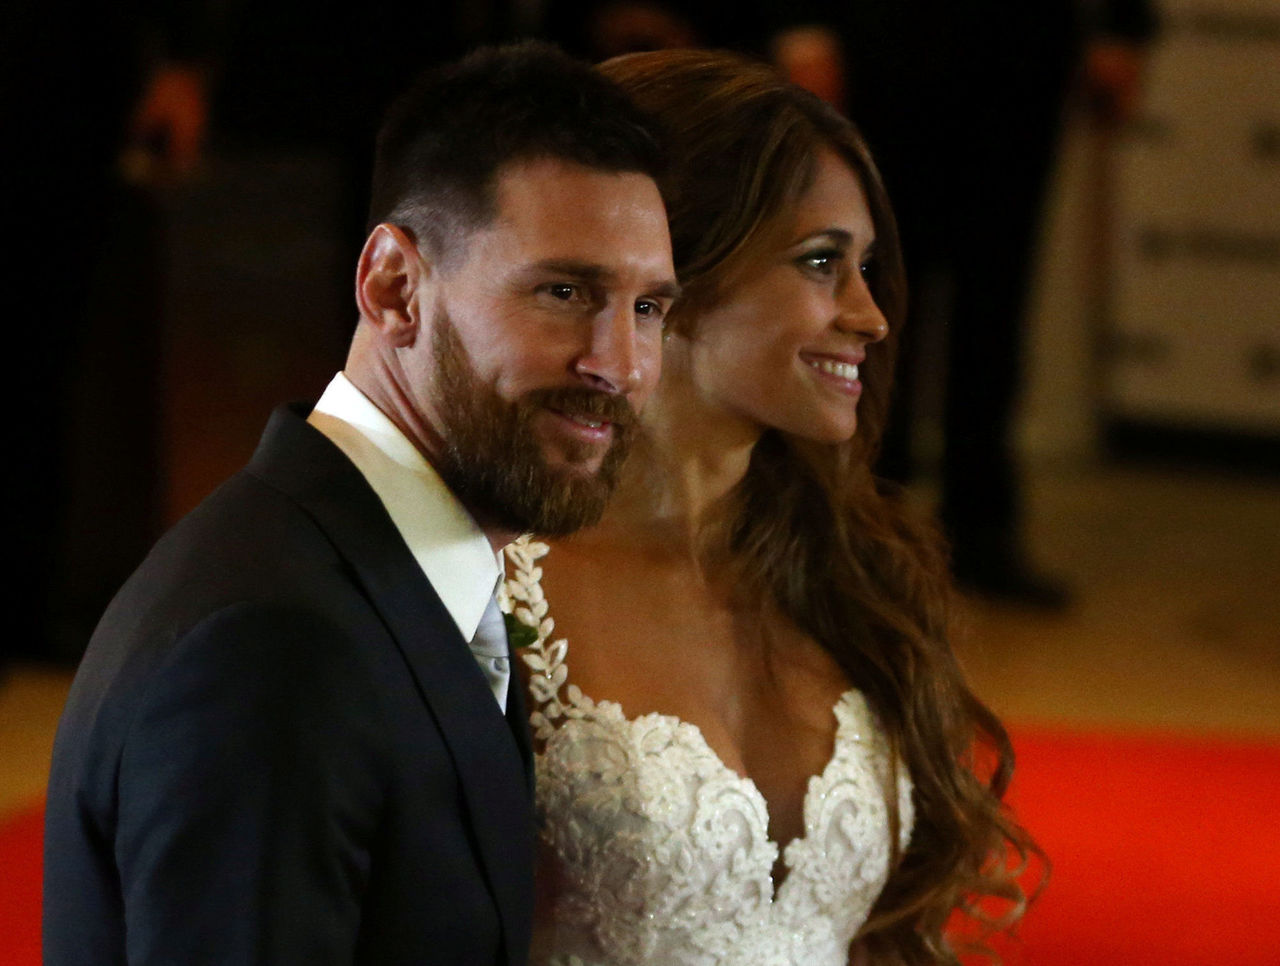 Cropped 2017 07 01t004358z 15534909 rc17987bea90 rtrmadp 3 people messi wedding